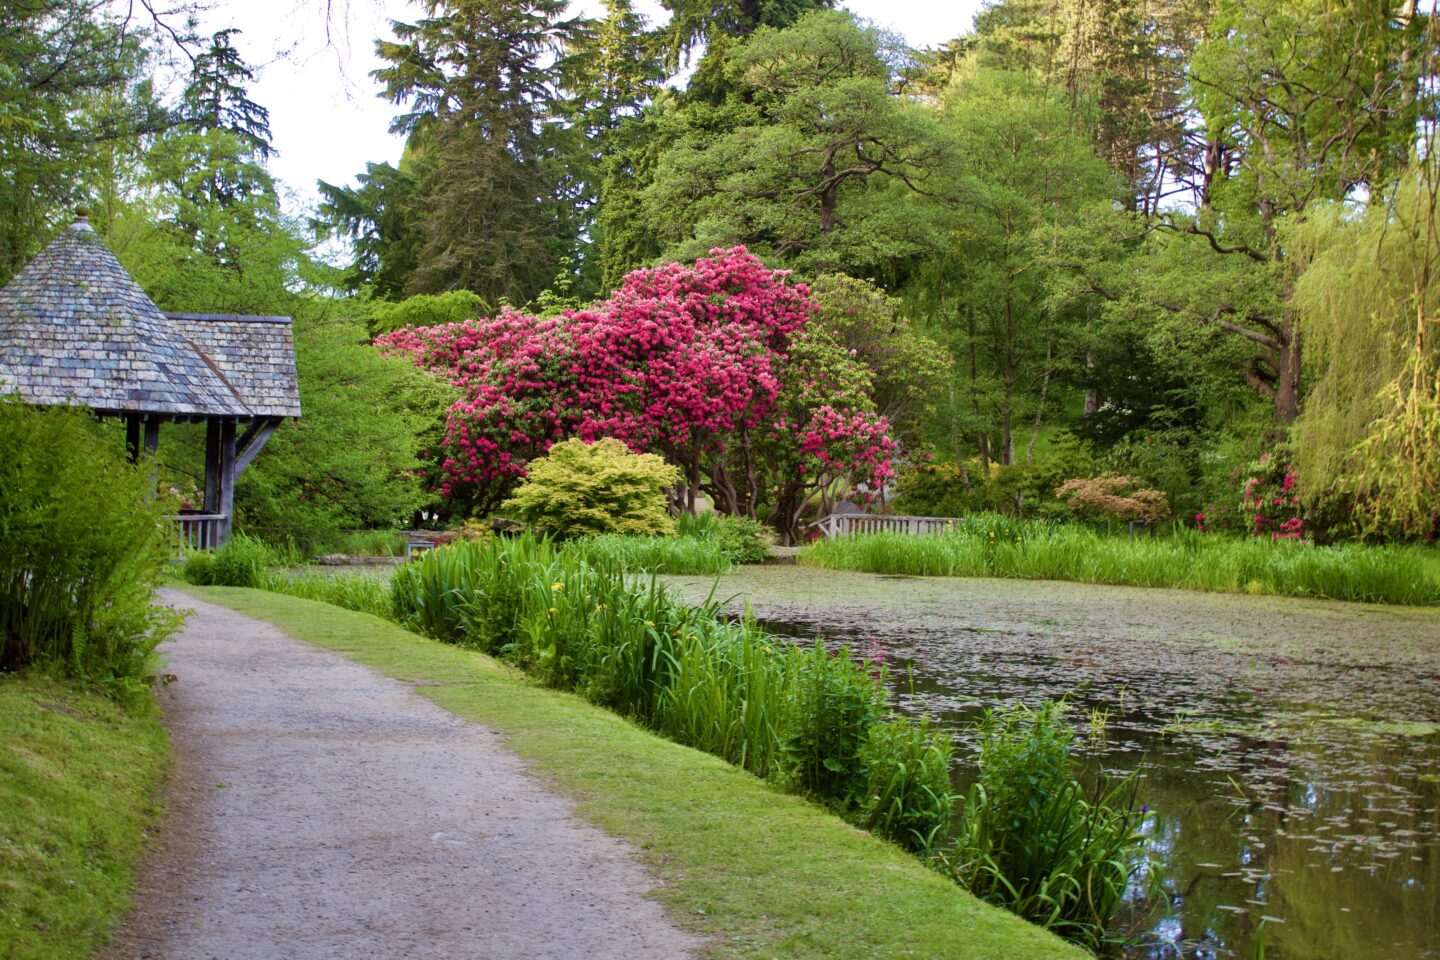 A tree with bright pink flowers on it stands beyond a small lake, it's surrounded by greenery and a corner of a boathouse can be seen on the left